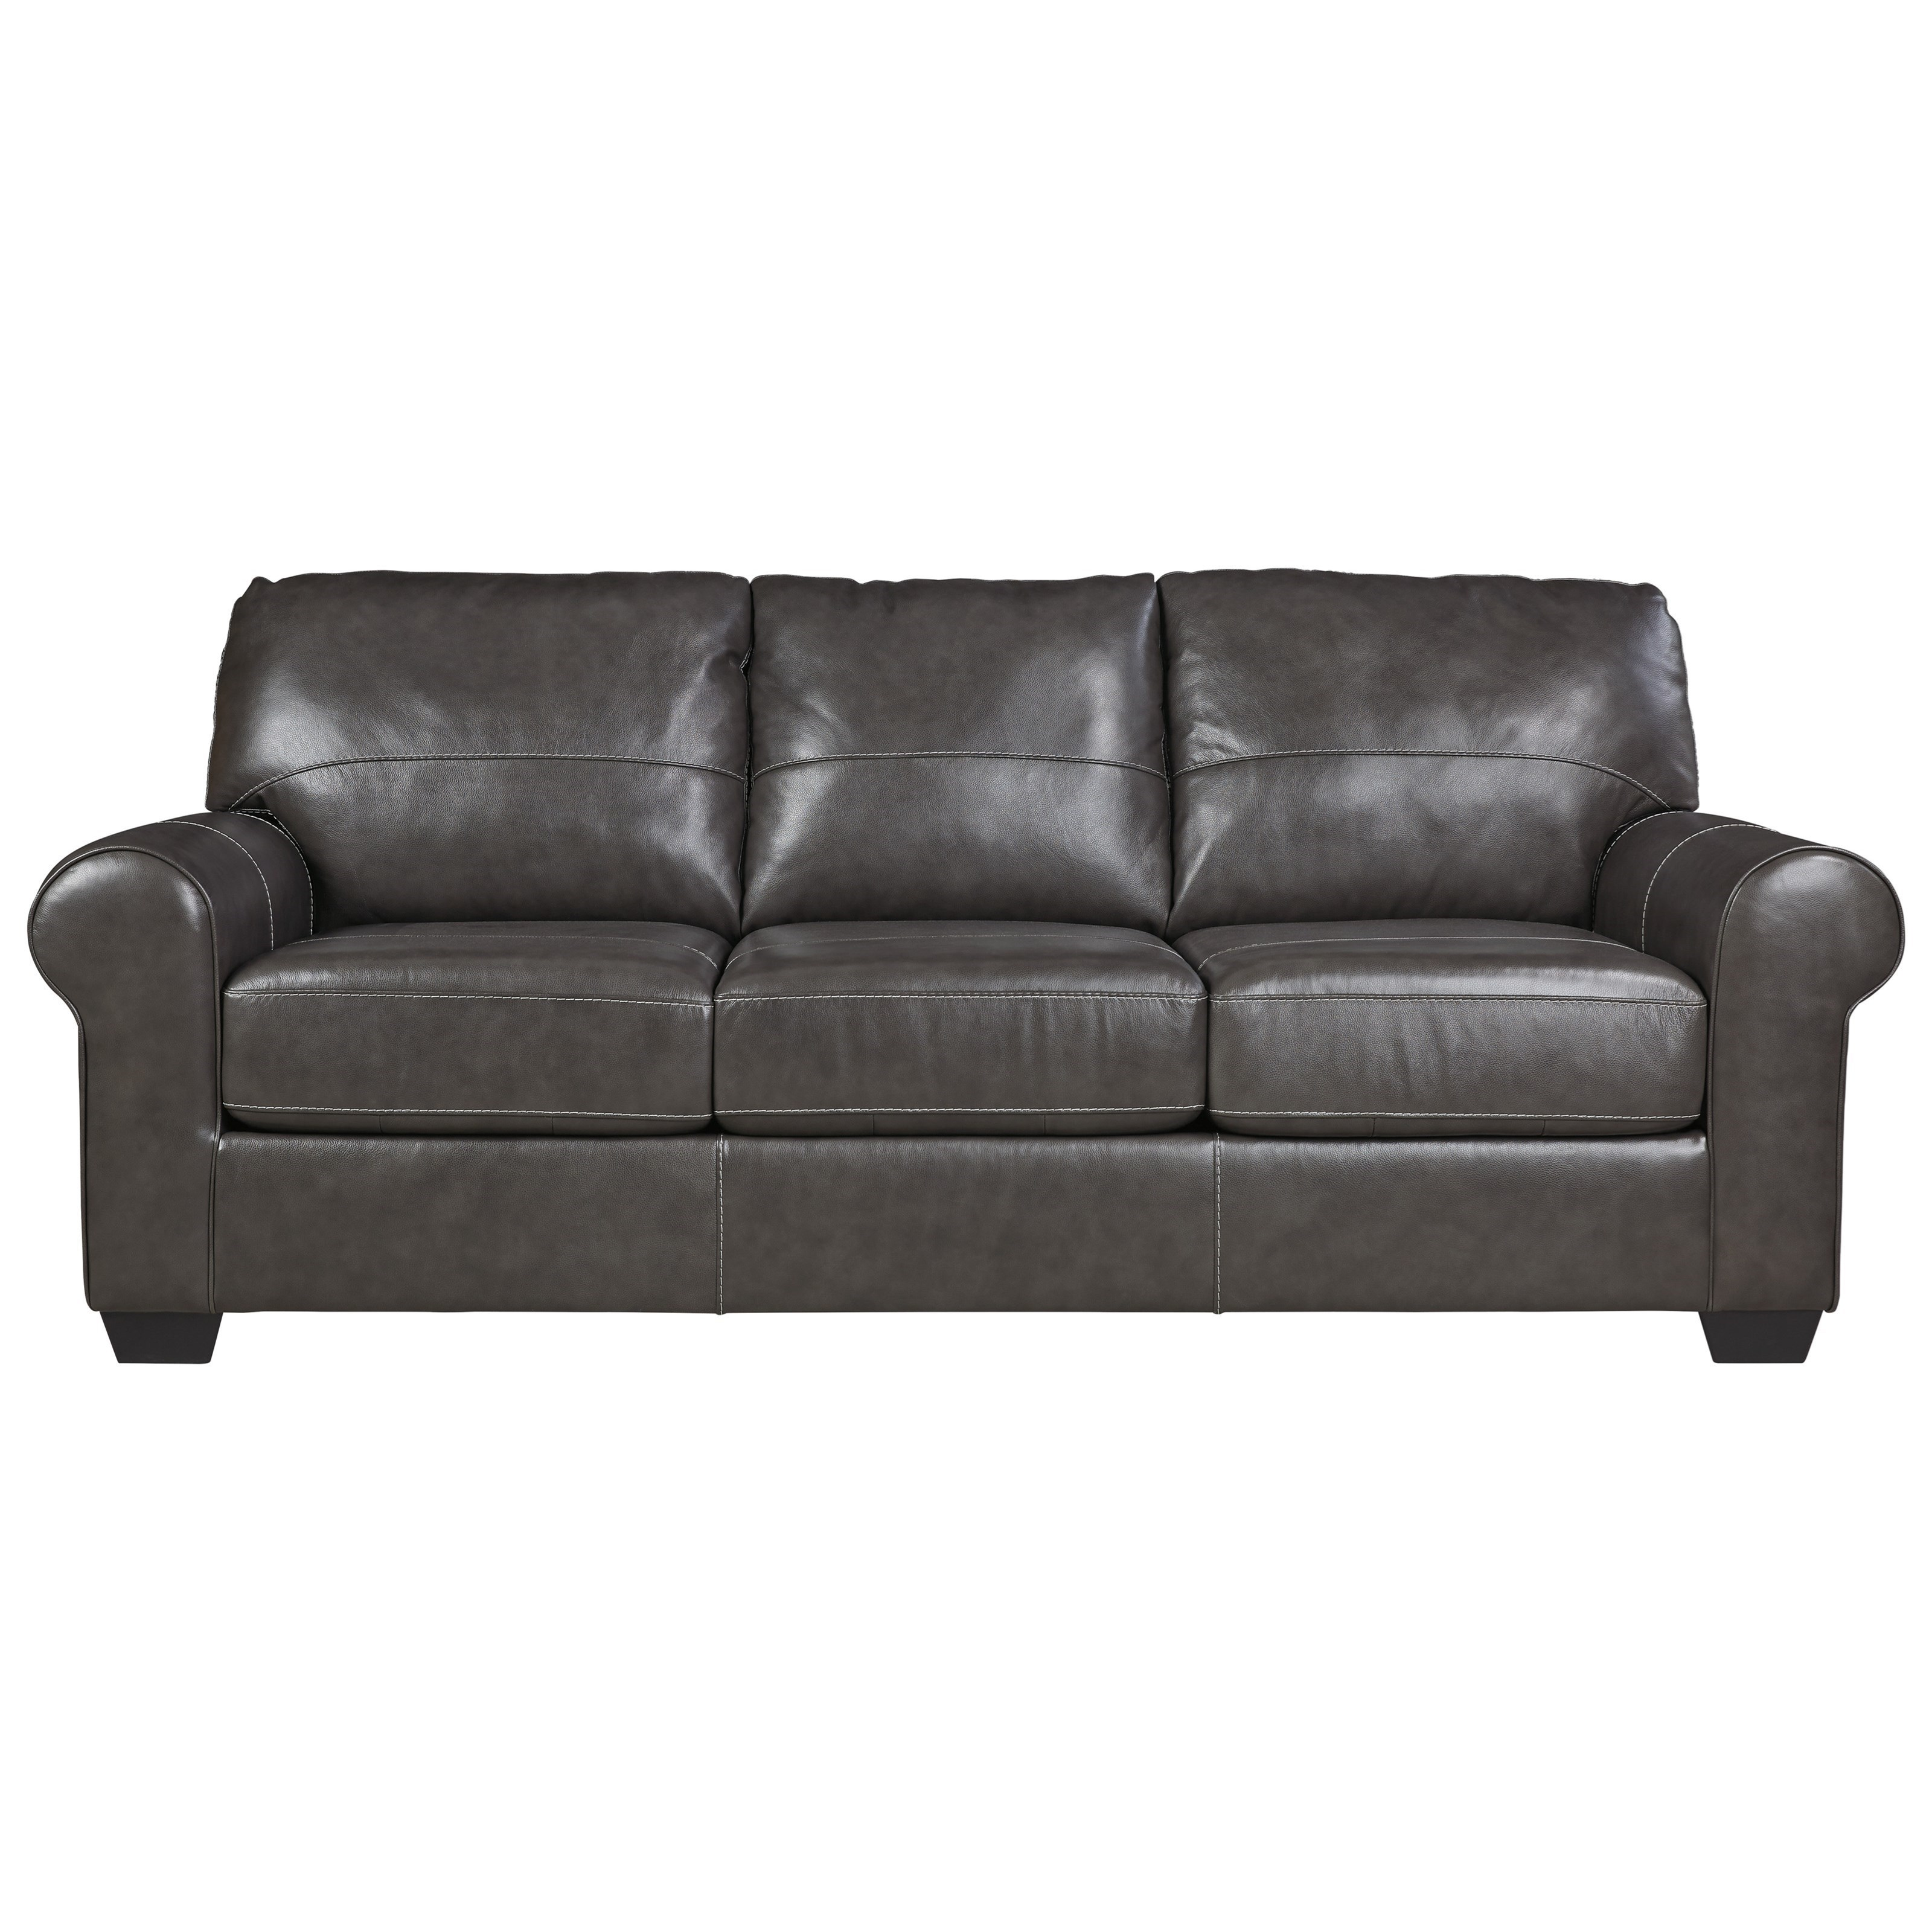 Signature Design by Ashley Canterelli Queen Sofa Sleeper - Item Number: 9800339